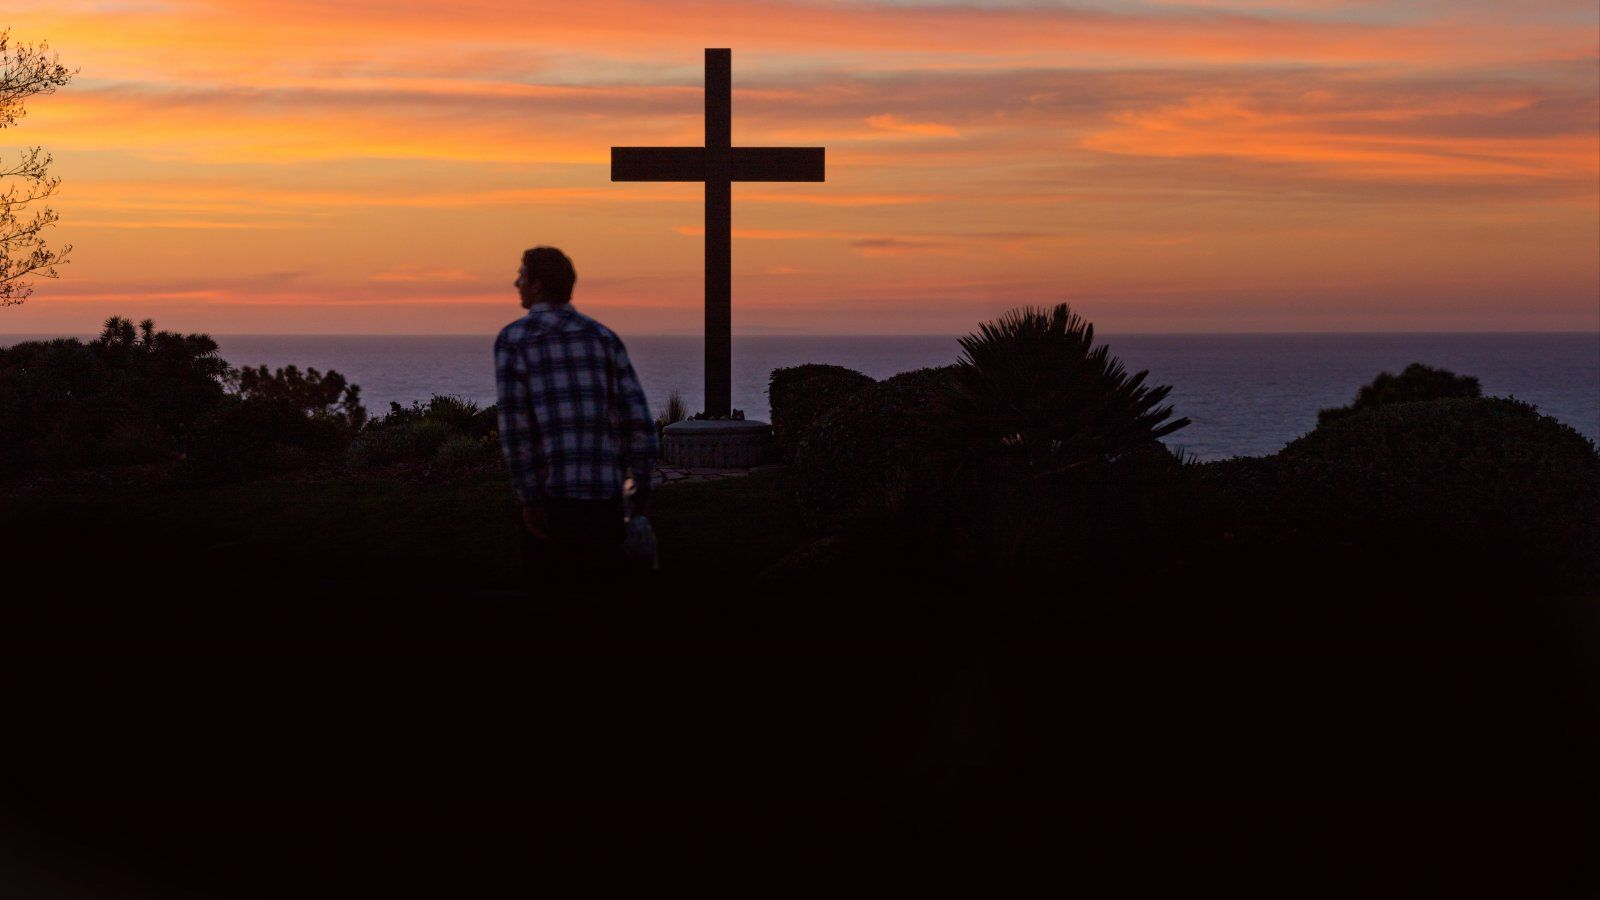 Male student walks past the cross with view of a sunset.